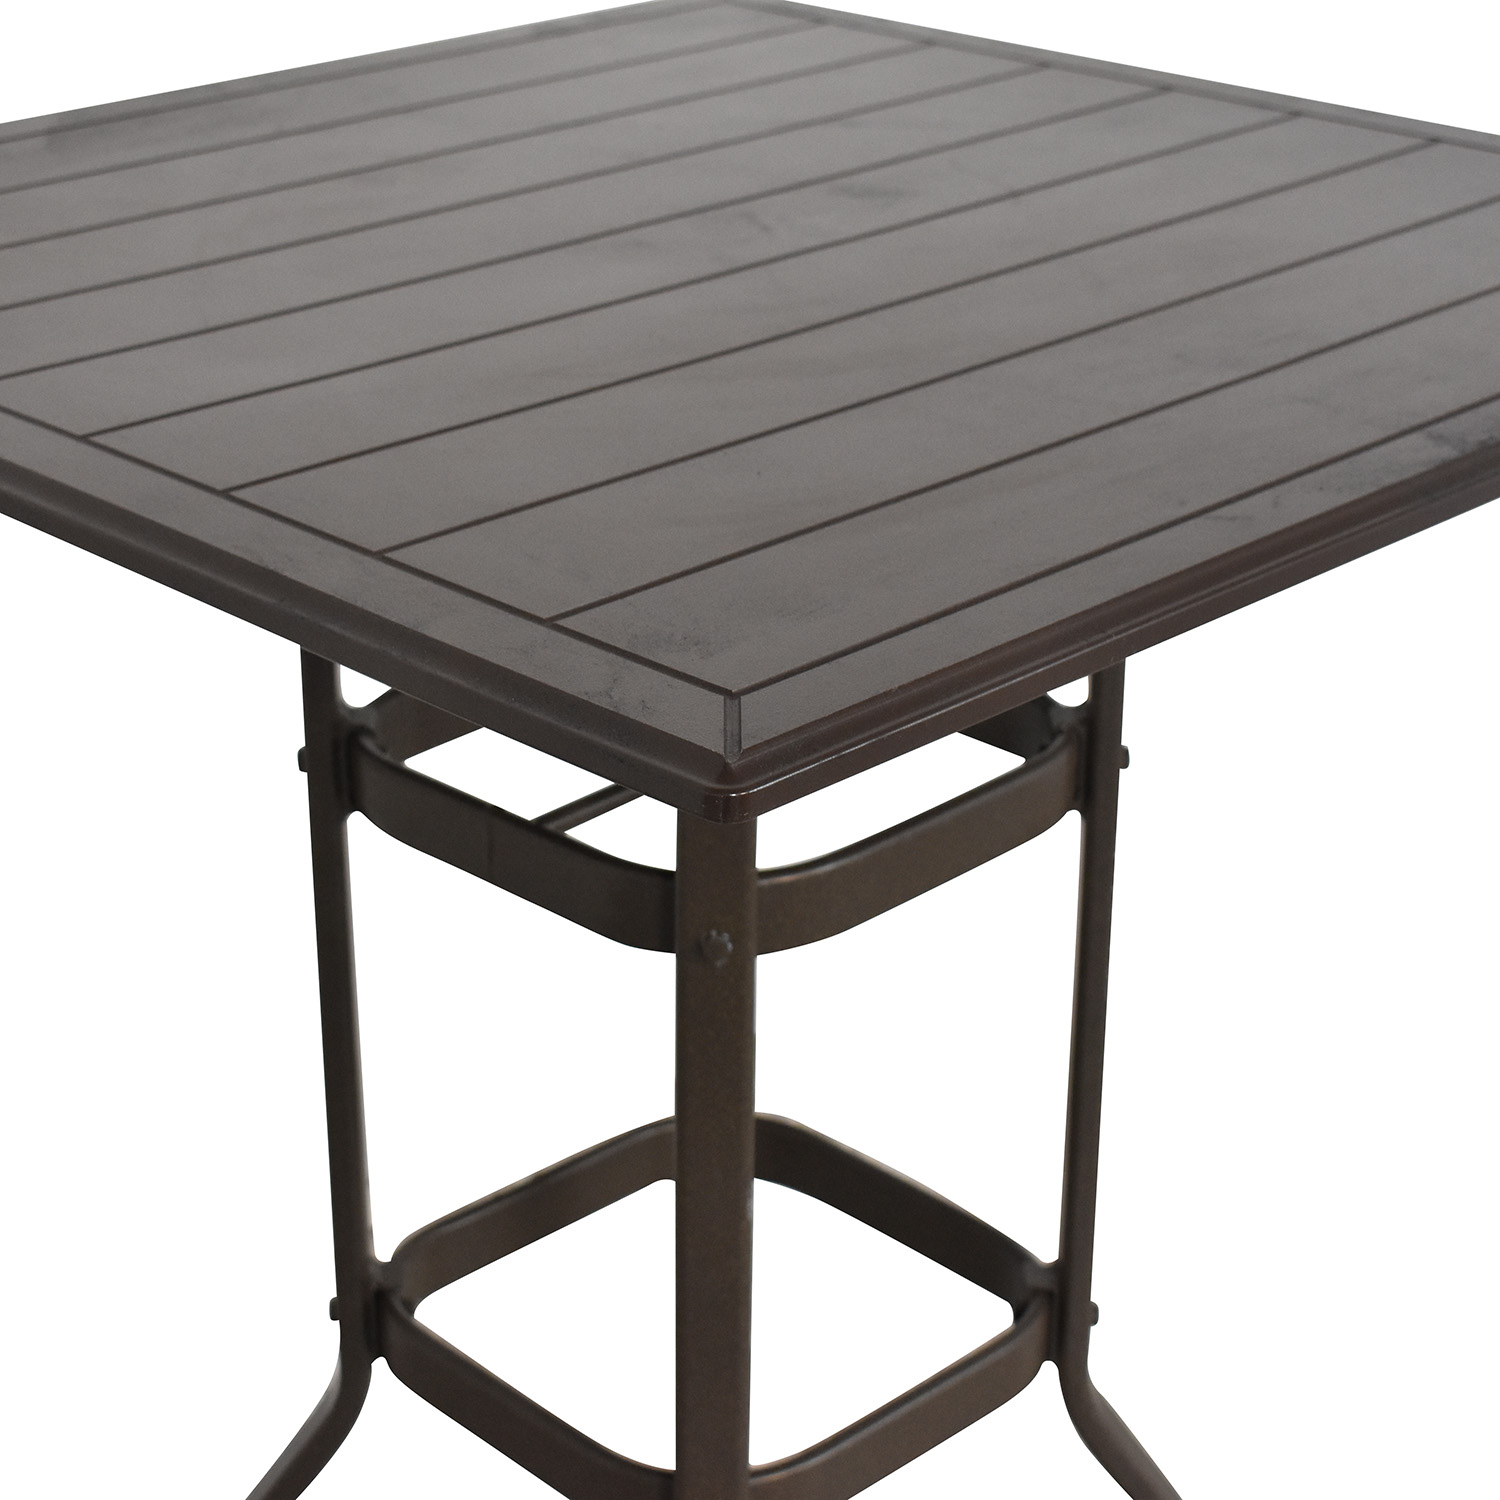 Windward Design Group Windward Design Group Dining Table price